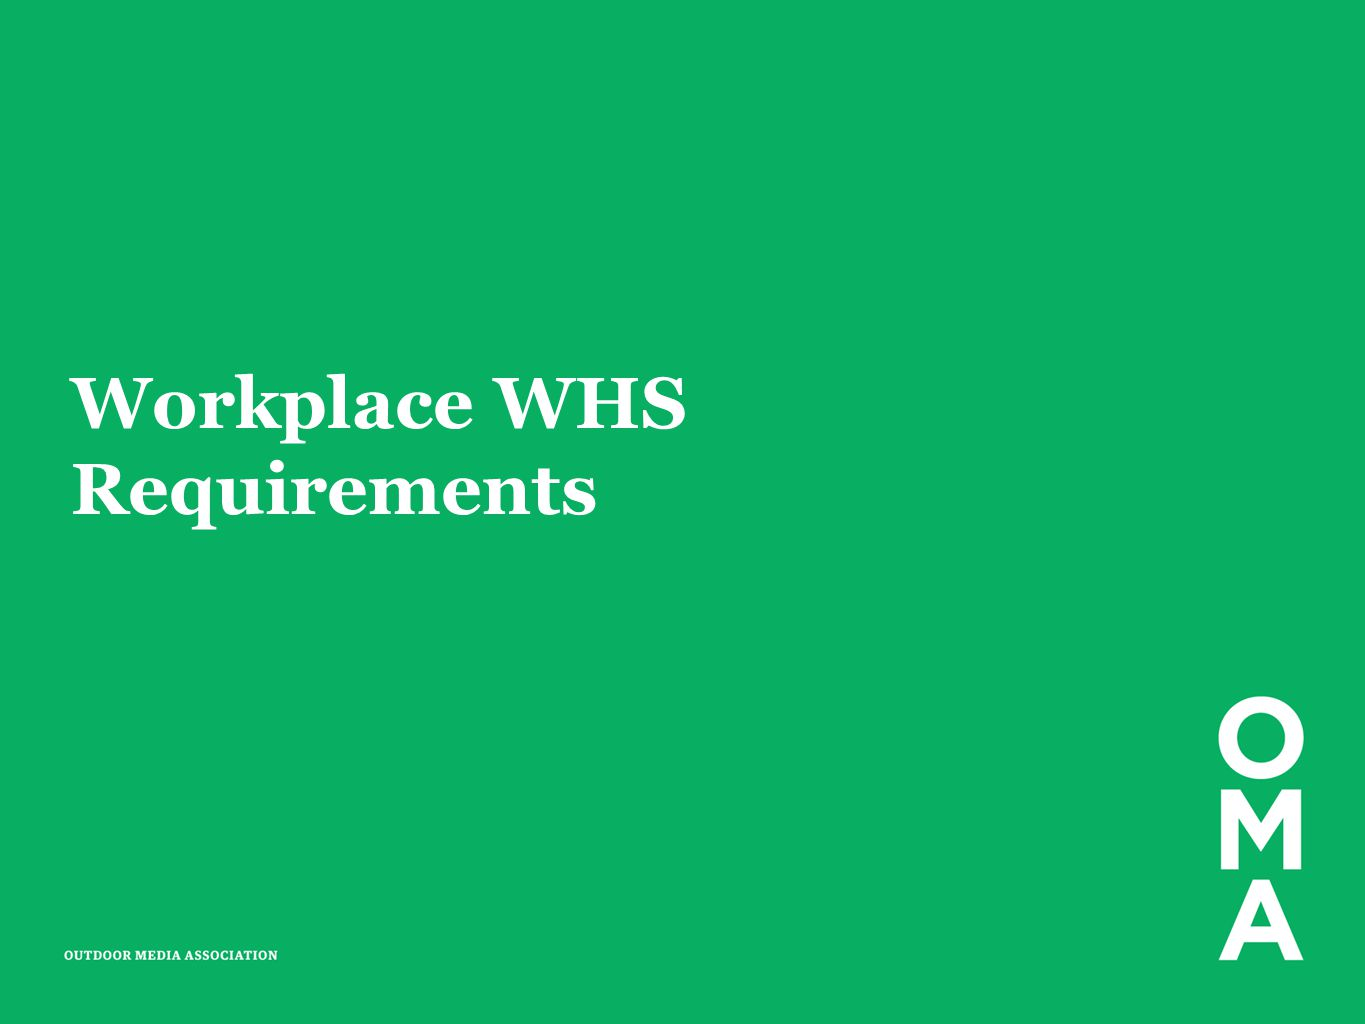 Workplace WHS Requirements